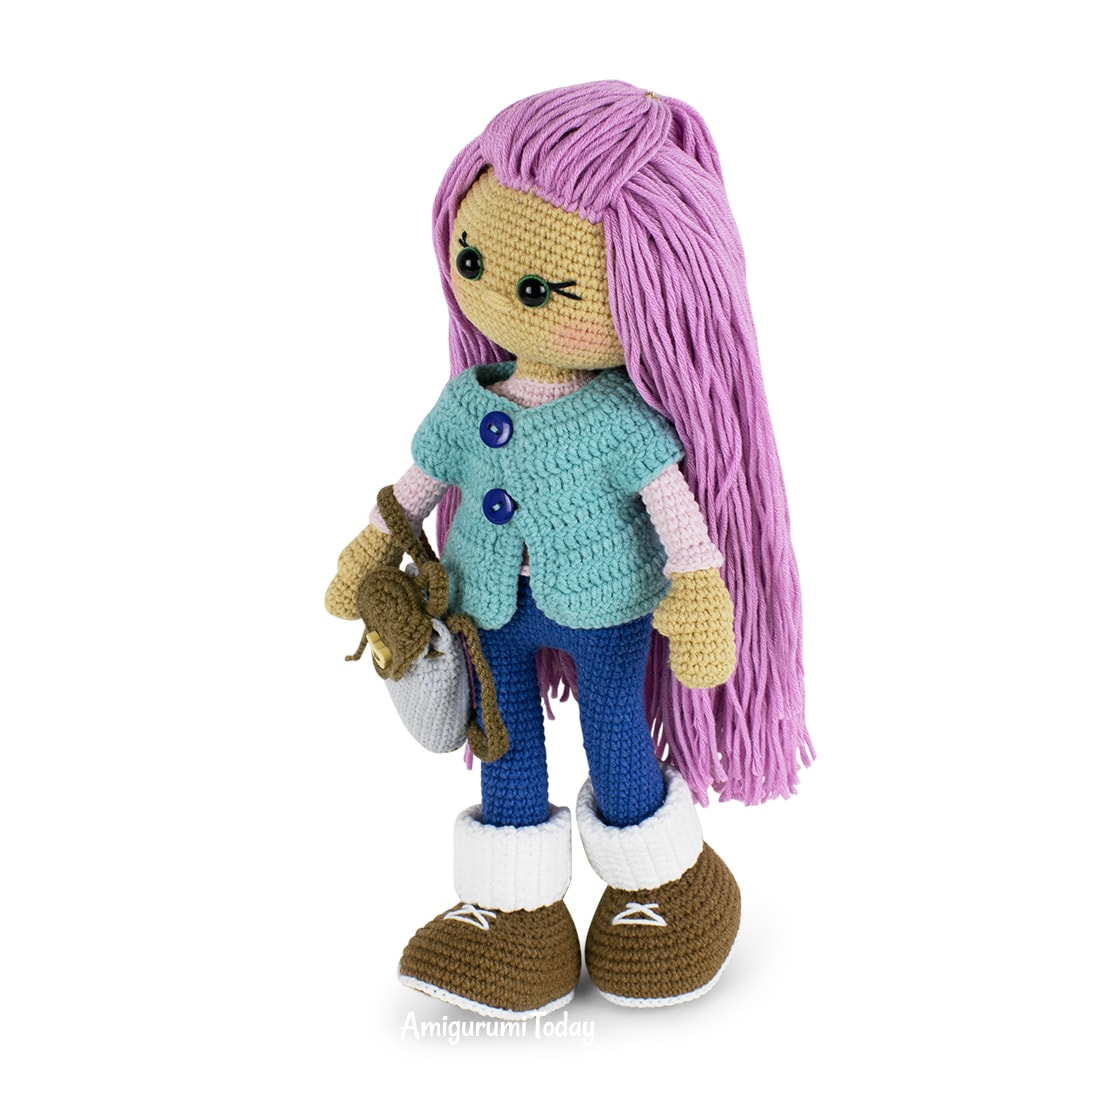 Free Molly Doll crochet pattern designed by Amigurumi Today